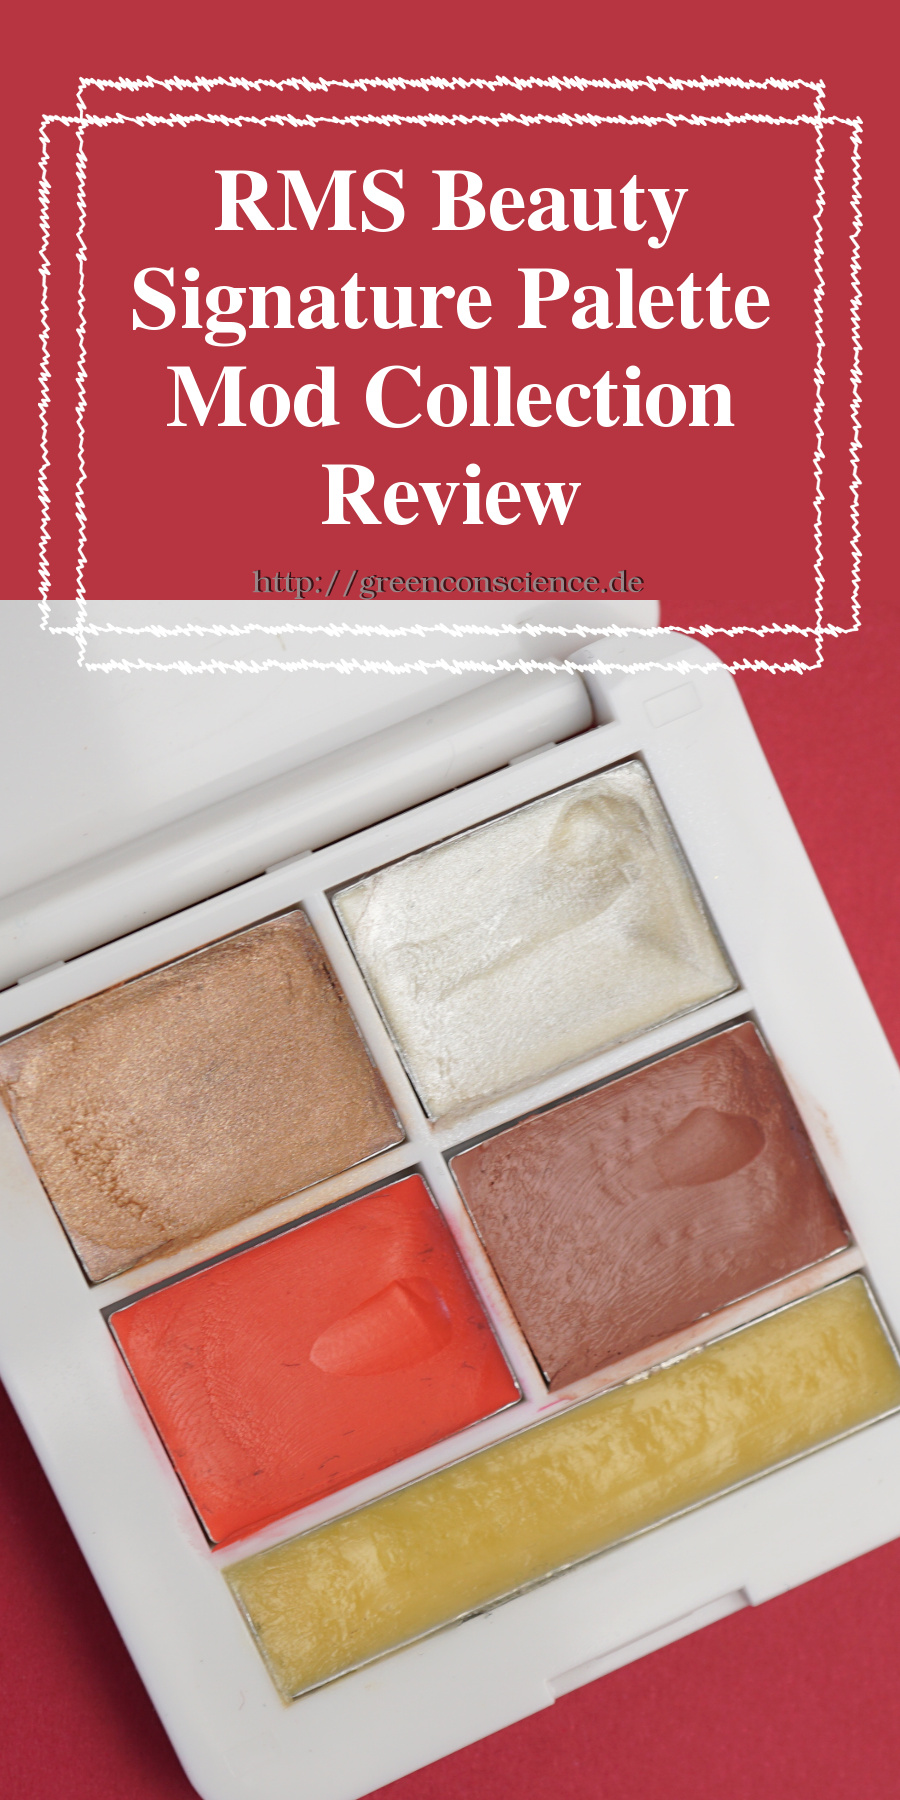 "RMS Beauty Signature Palette Mod Collection: Review auf GreenConscience.de Die RMS Beauty Signature Make-Up Palette ""Mod Collection"" enthält ""Master Mixer"", ""Living Luminizer"", ""Smile lip2cheek"", ""Spell lip2cheek"" und ""Simply cocoa lip & skin balm"". #makeup #rmsbeauty #naturkosmetik #greenconscience"